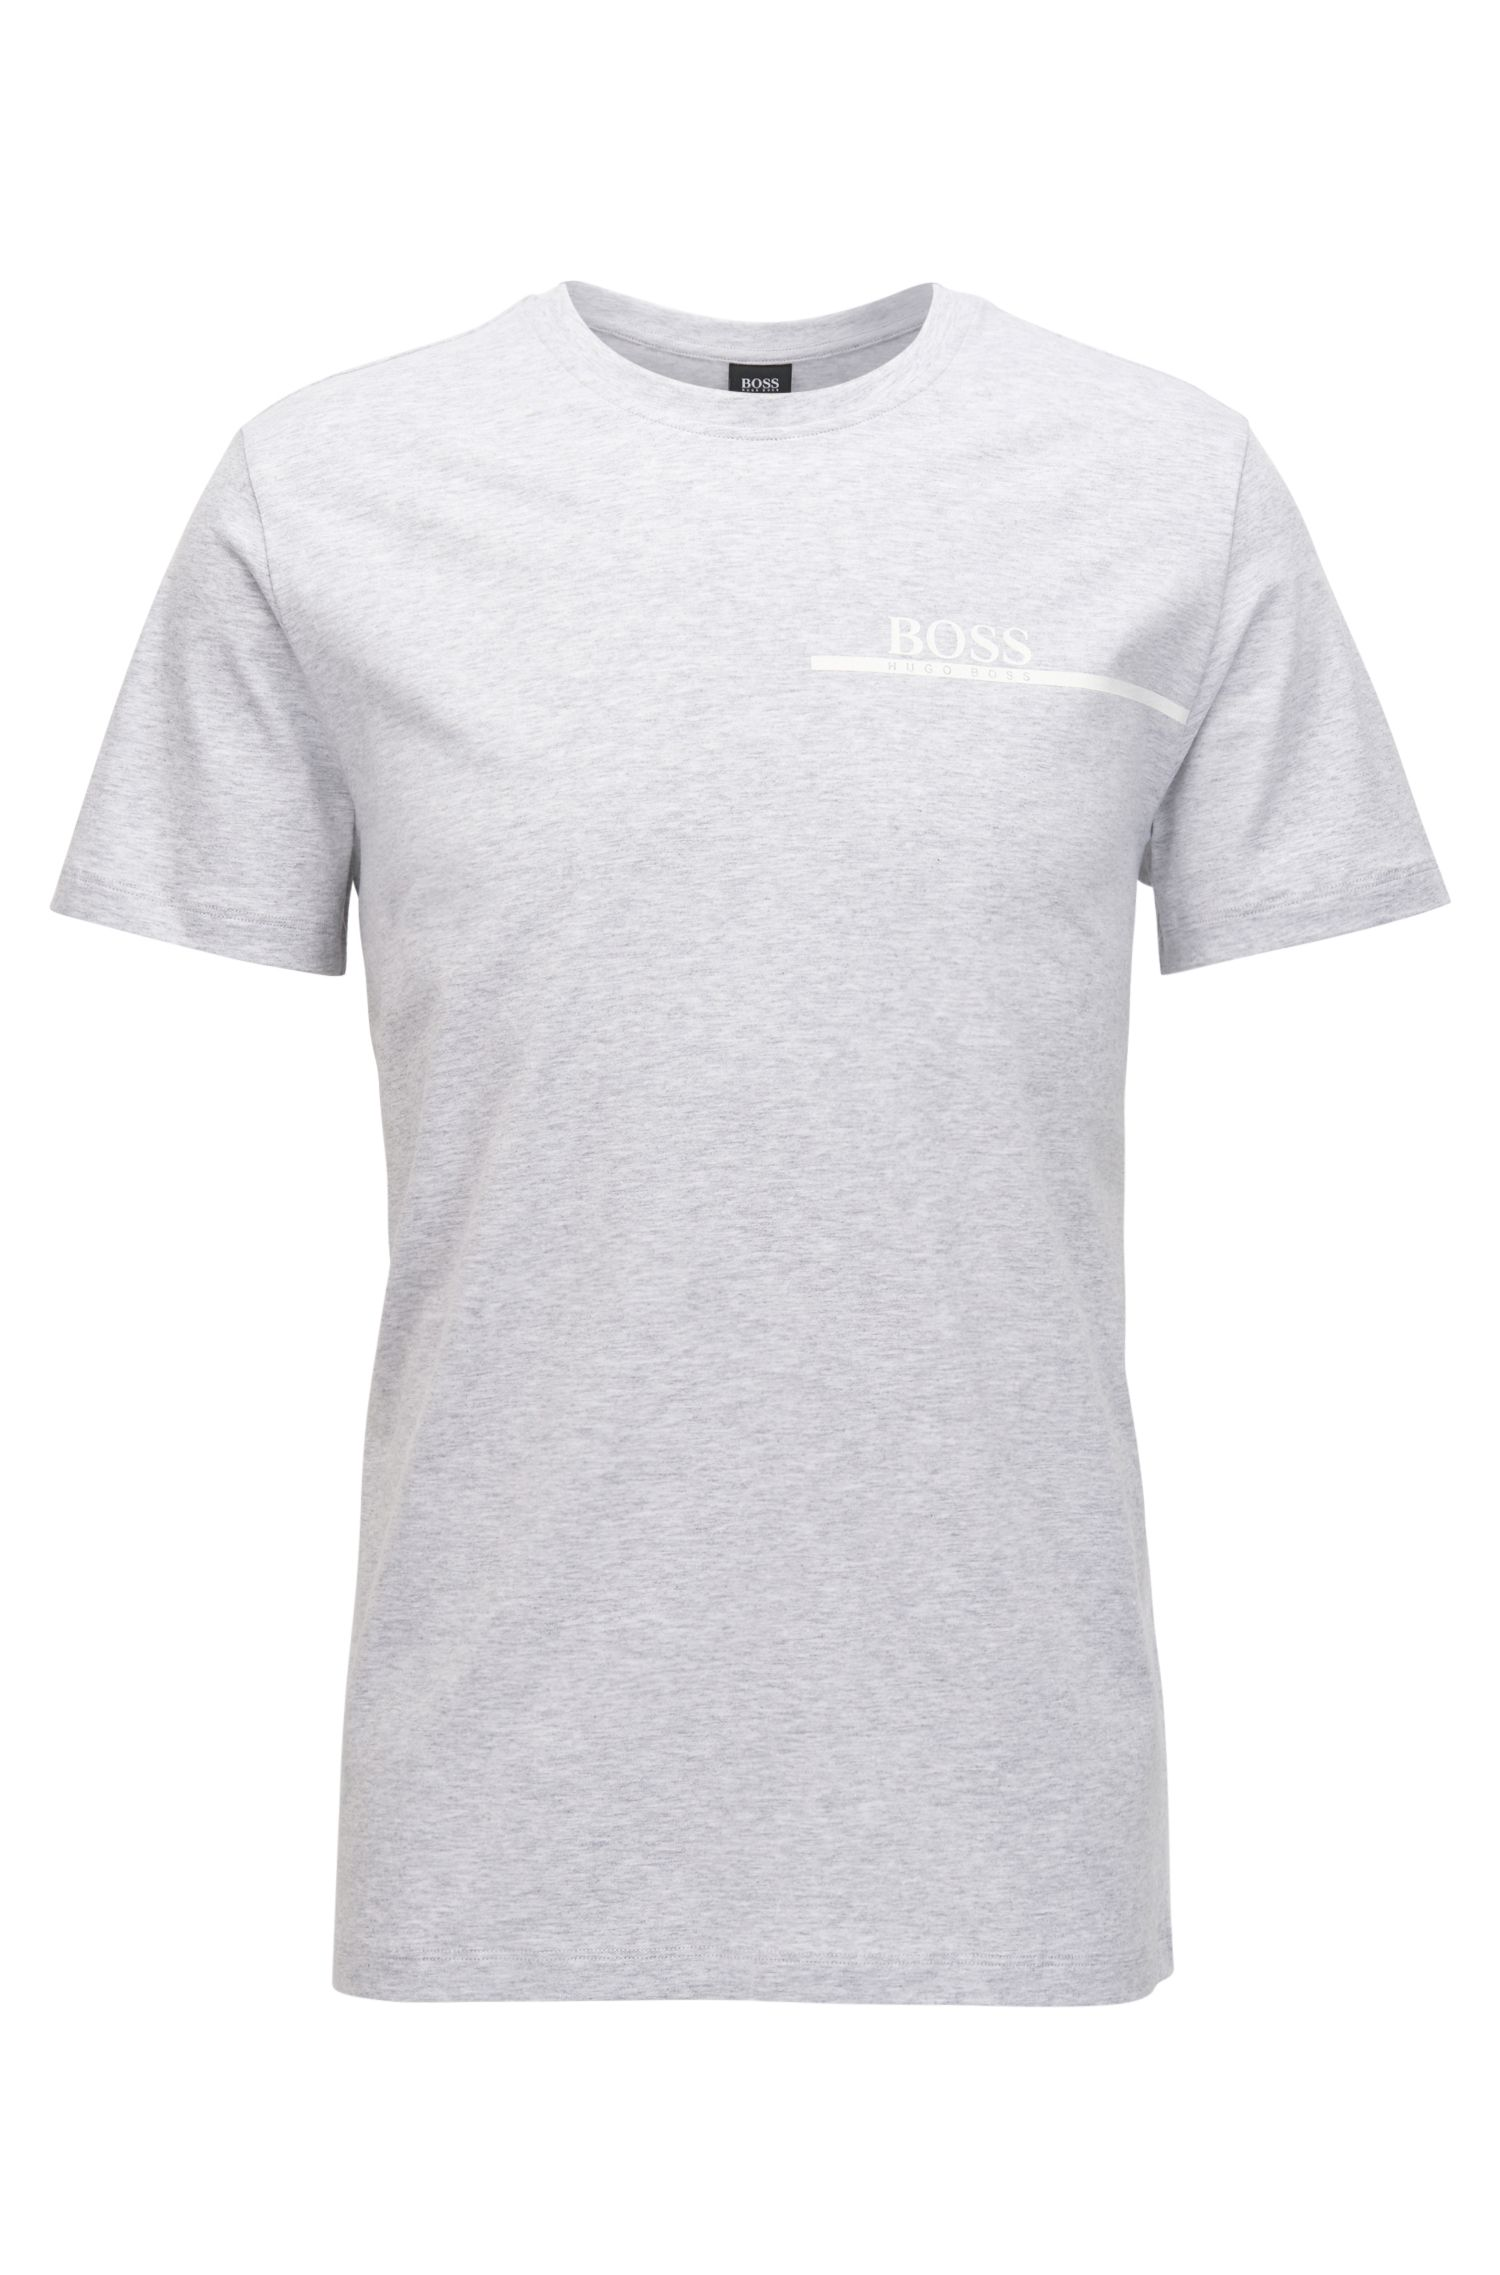 Relaxed-fit cotton T-shirt with logo print